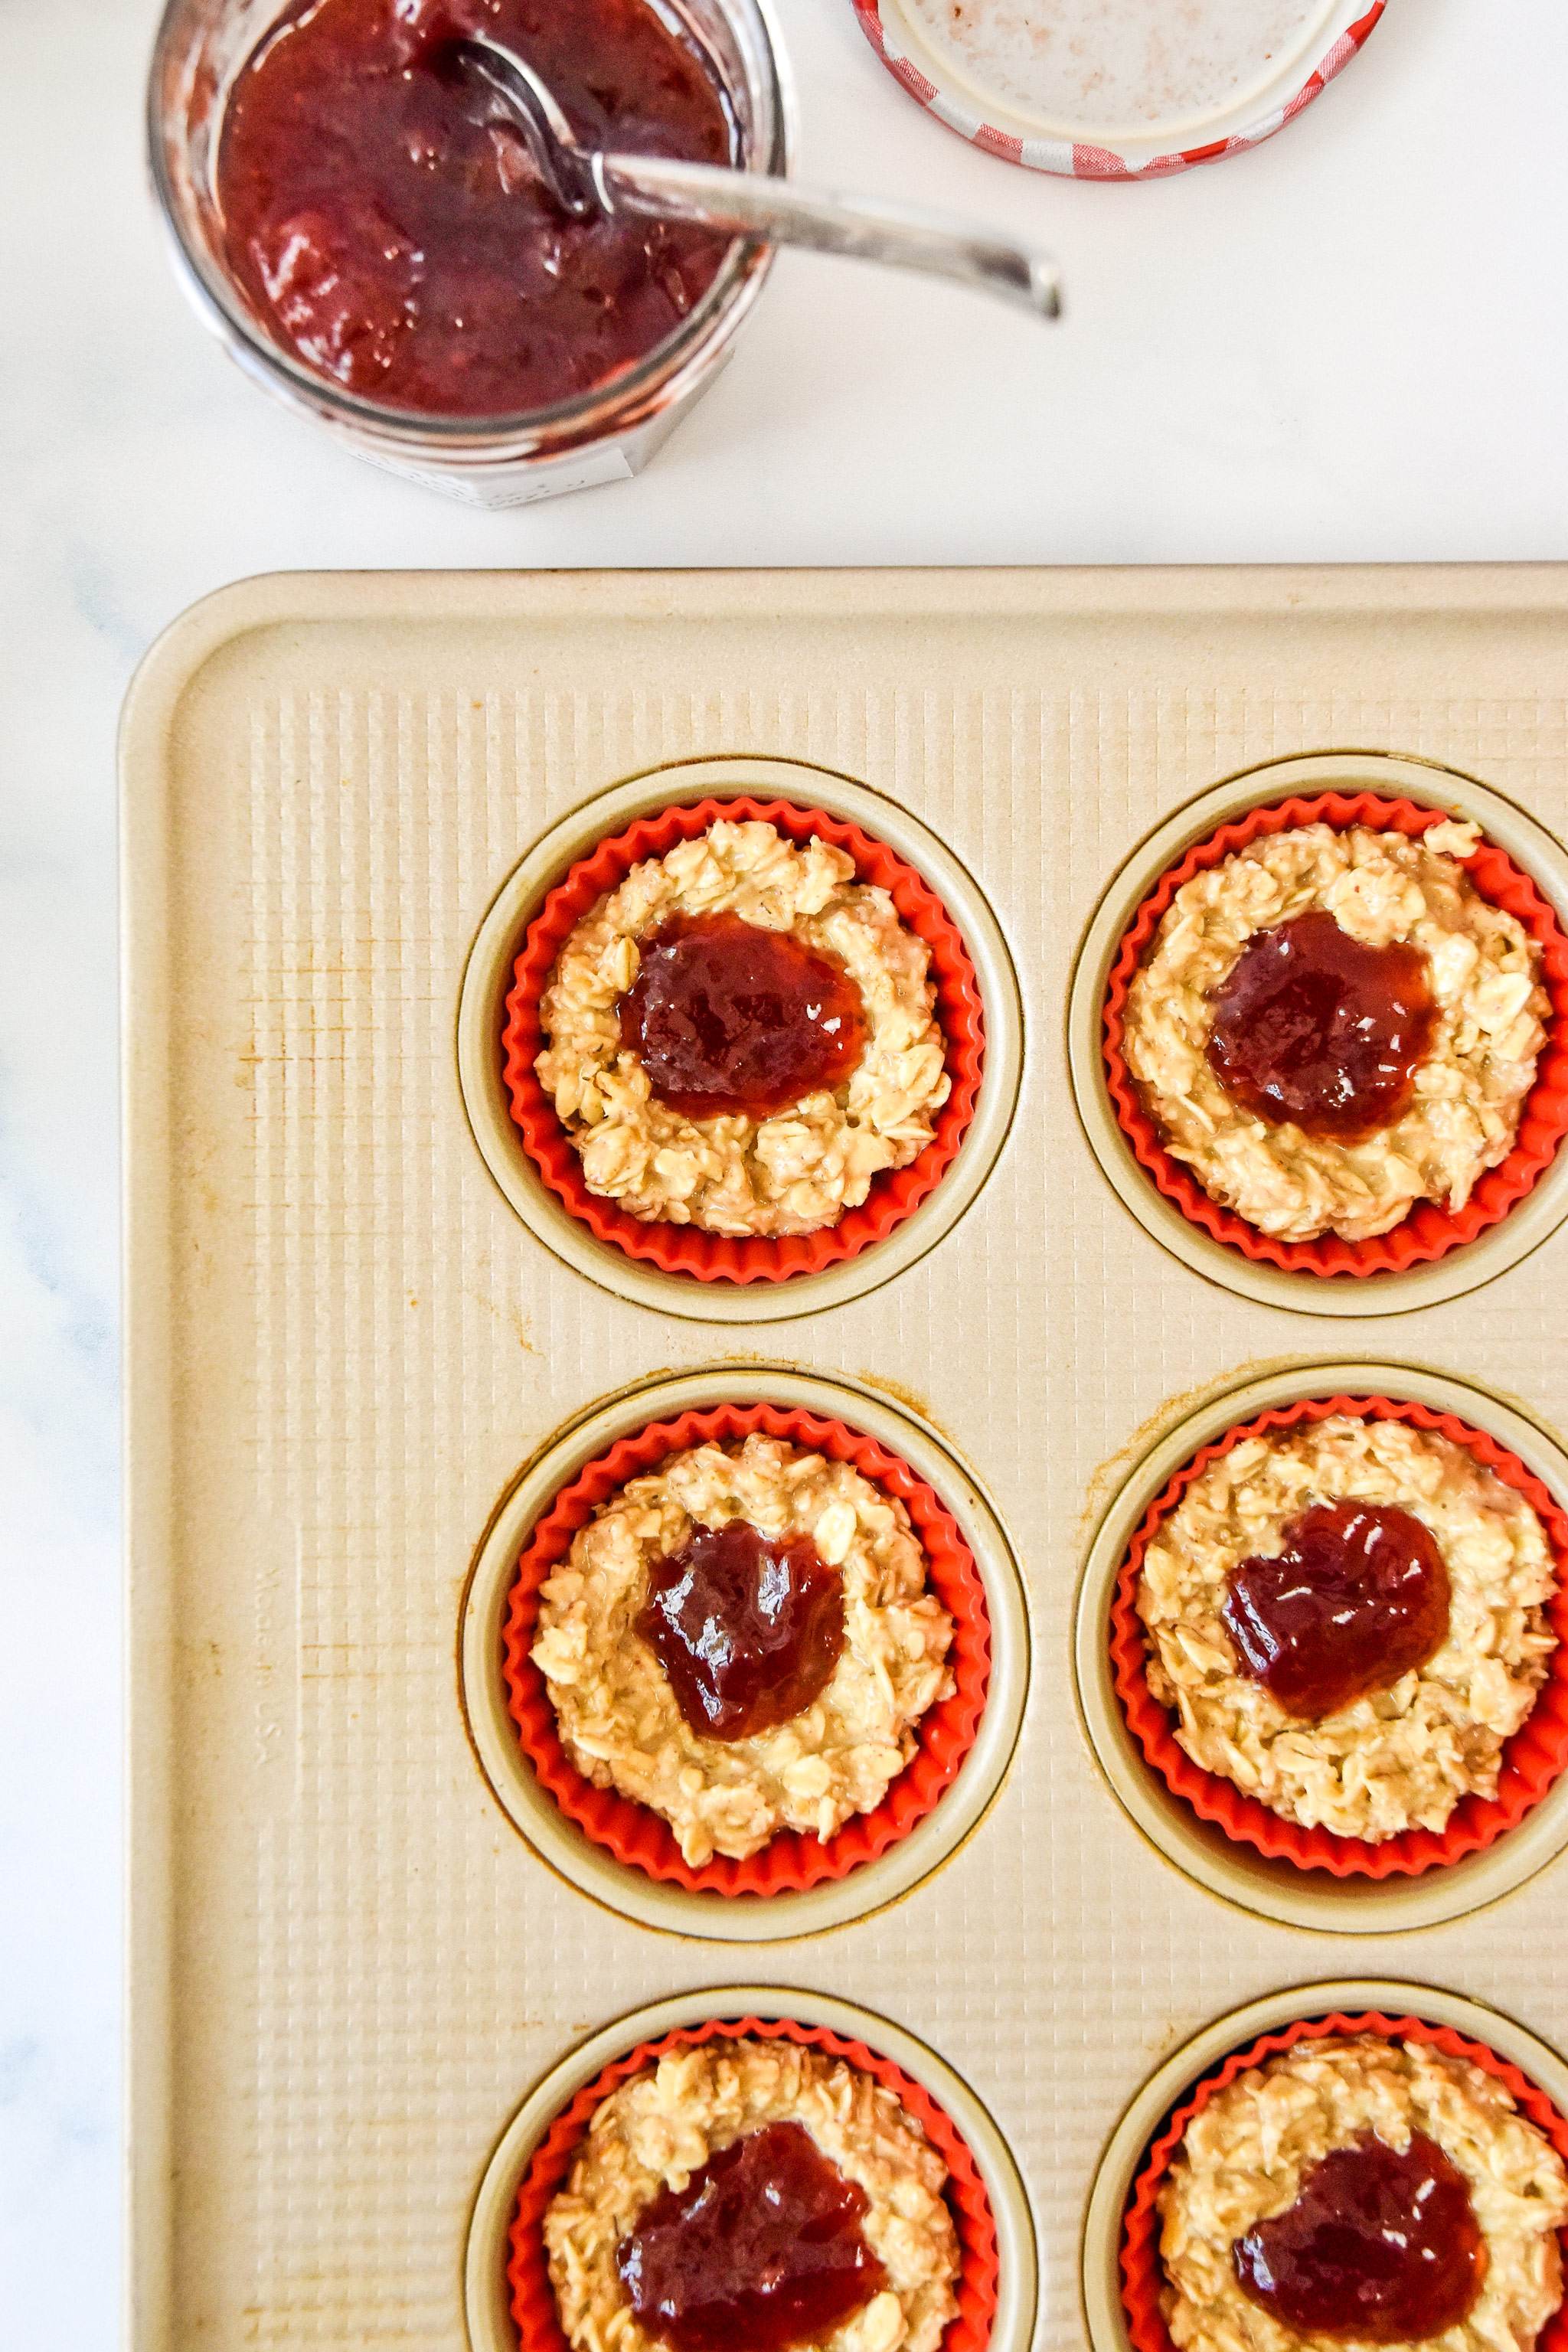 jelly in the center of each oatmeal cup in the muffin tin.